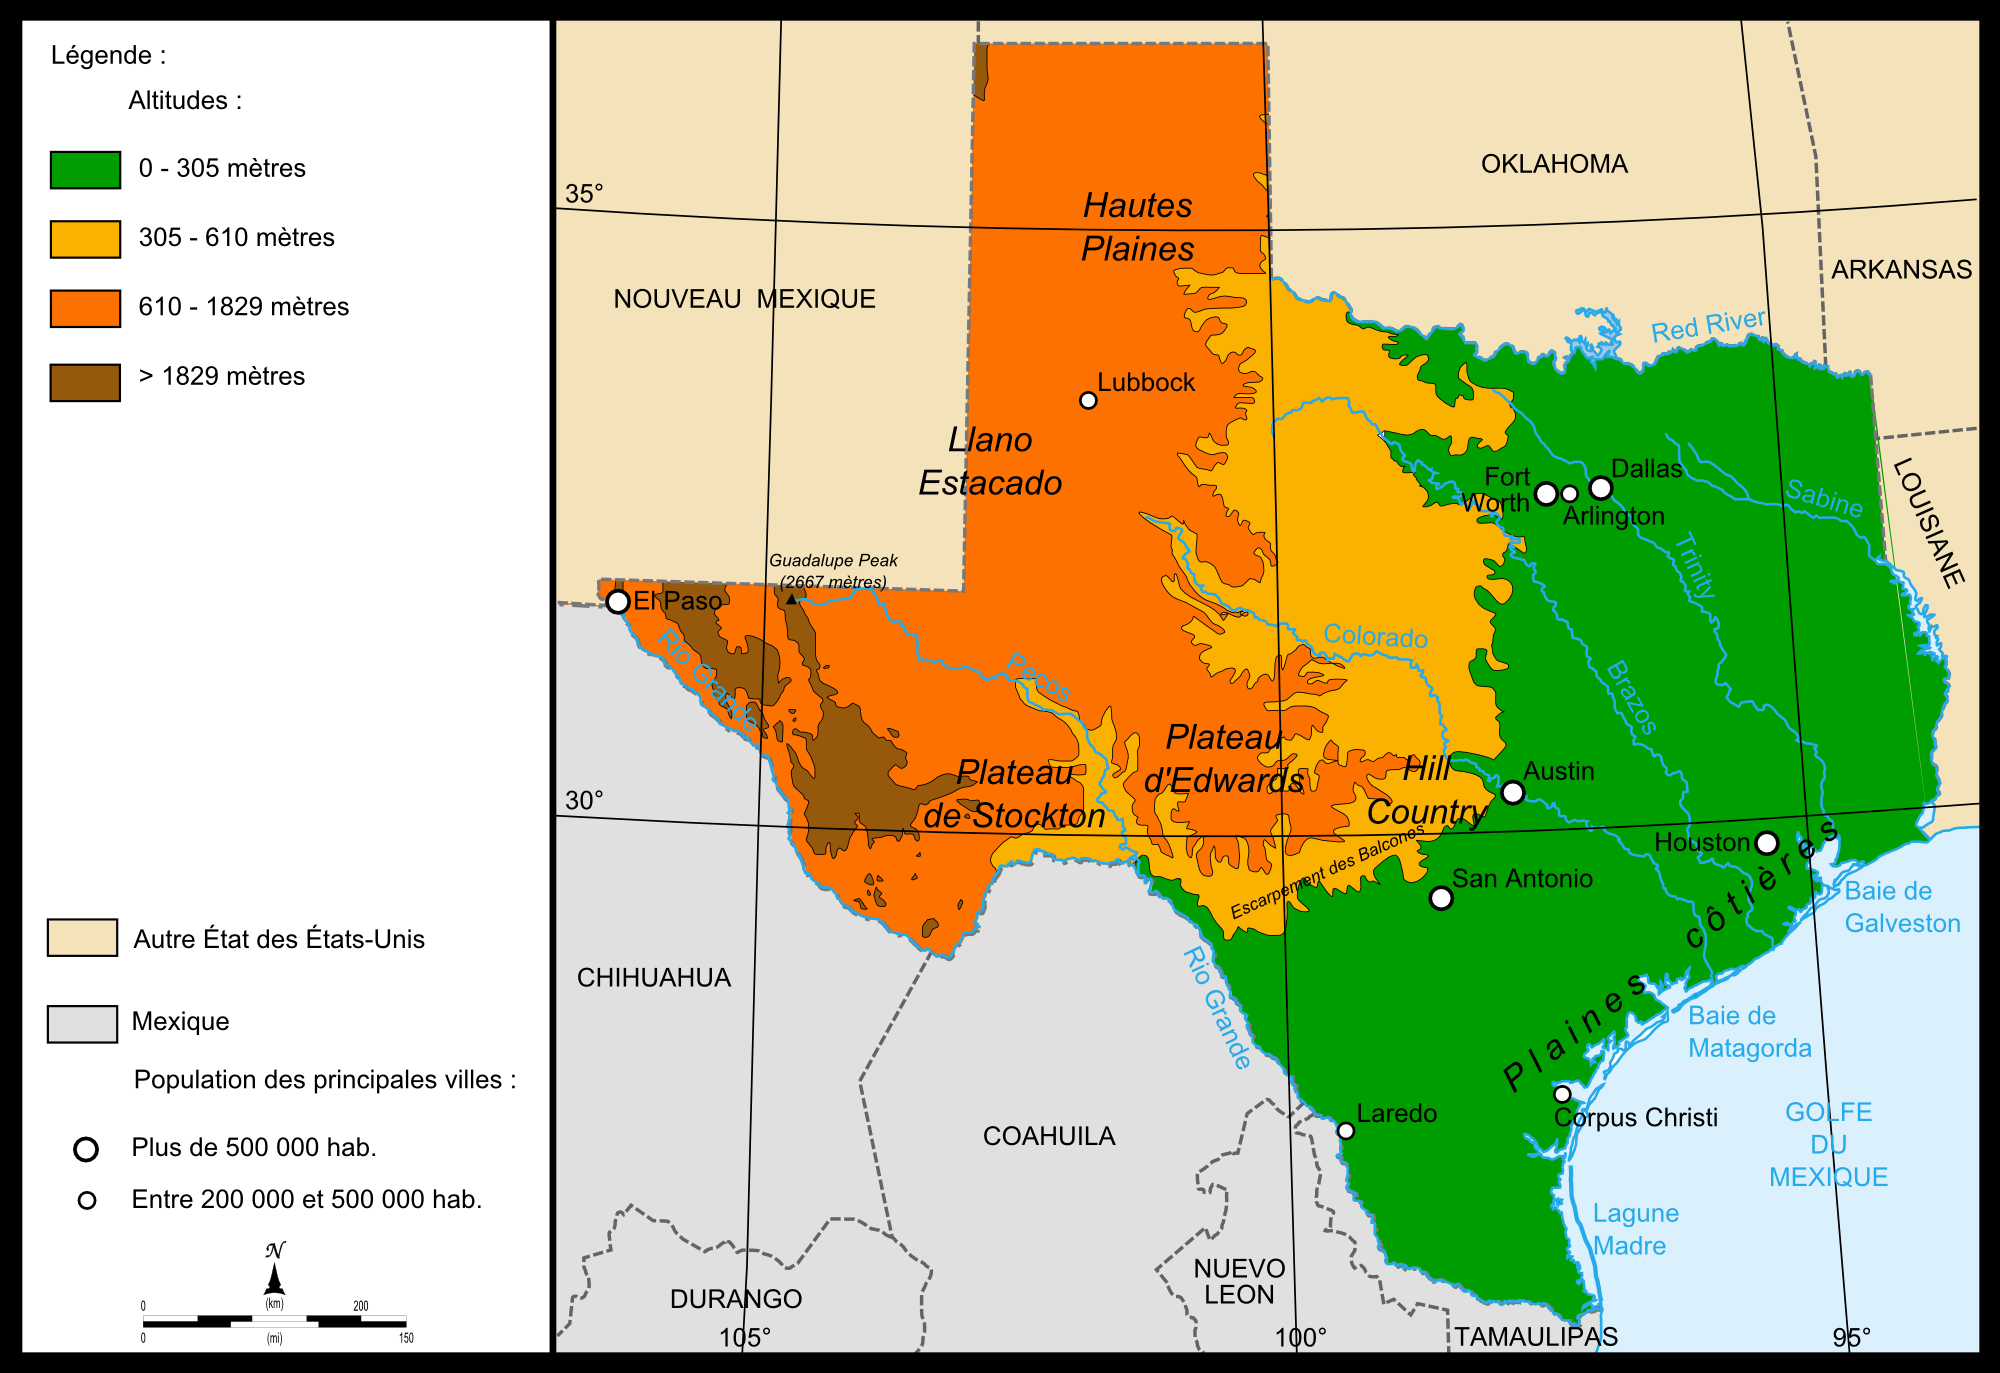 Relief Map Of Texas.File Map Relief Texas Png Wikimedia Commons